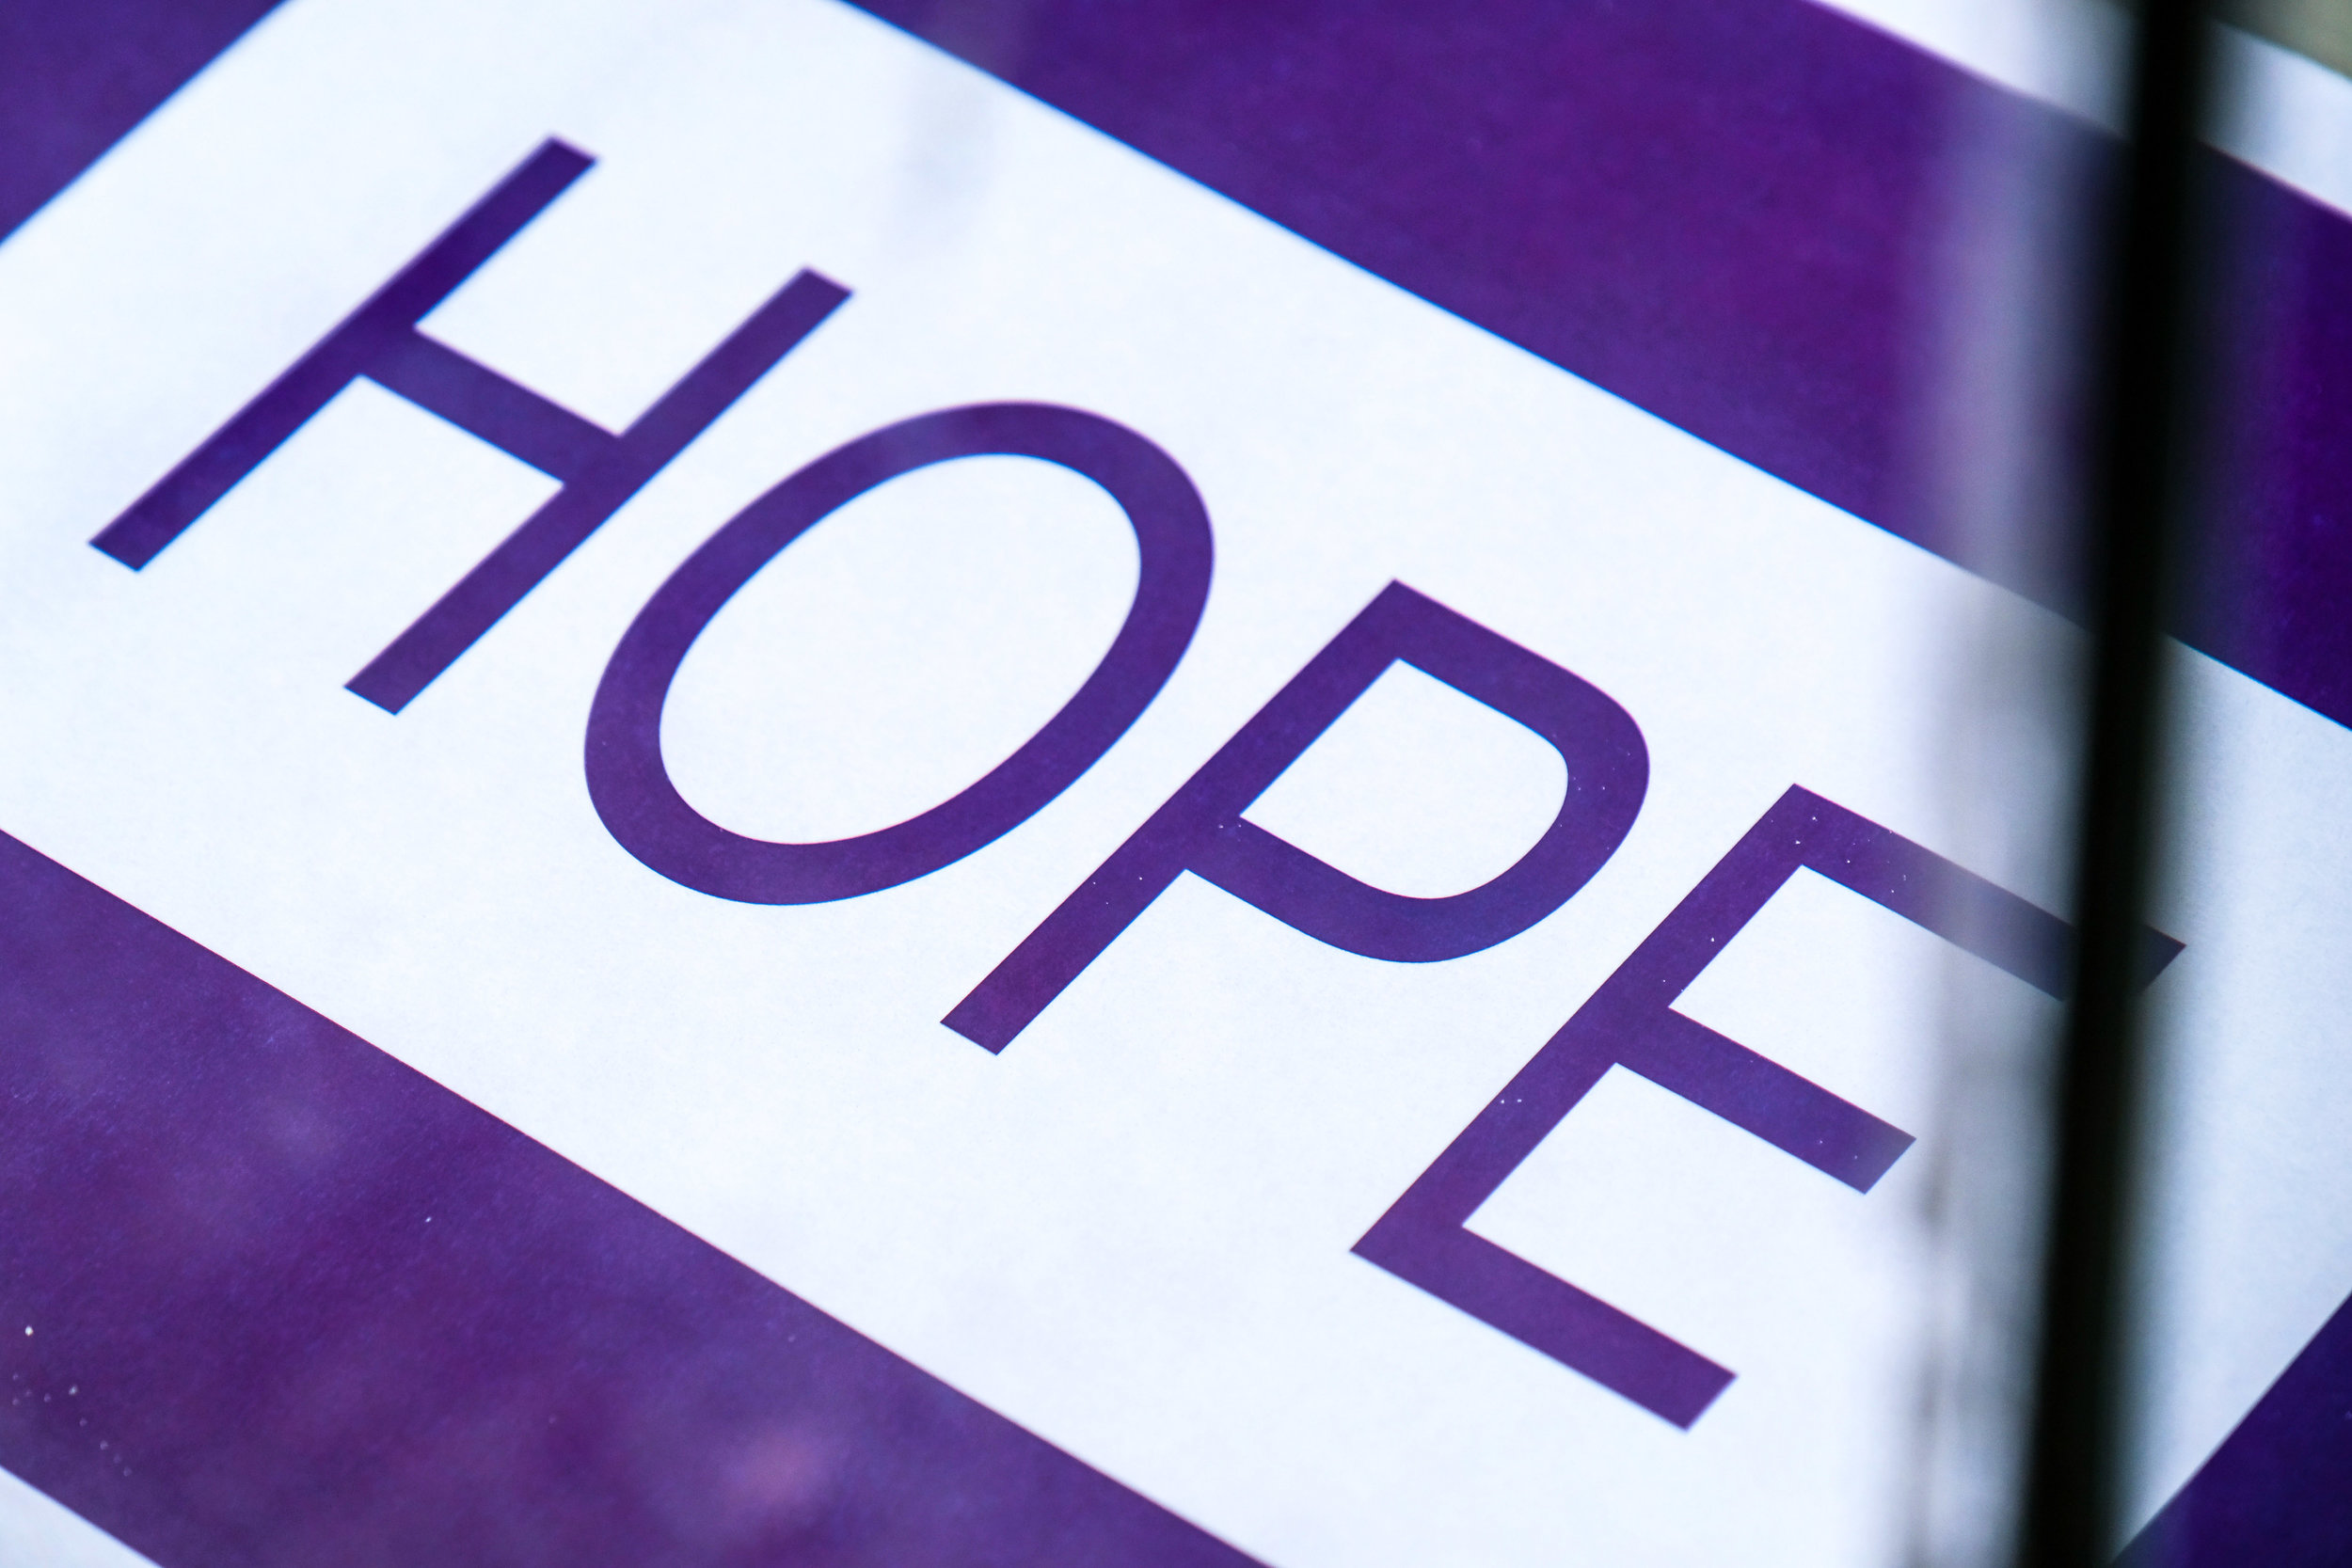 KHA_HOPE_sign